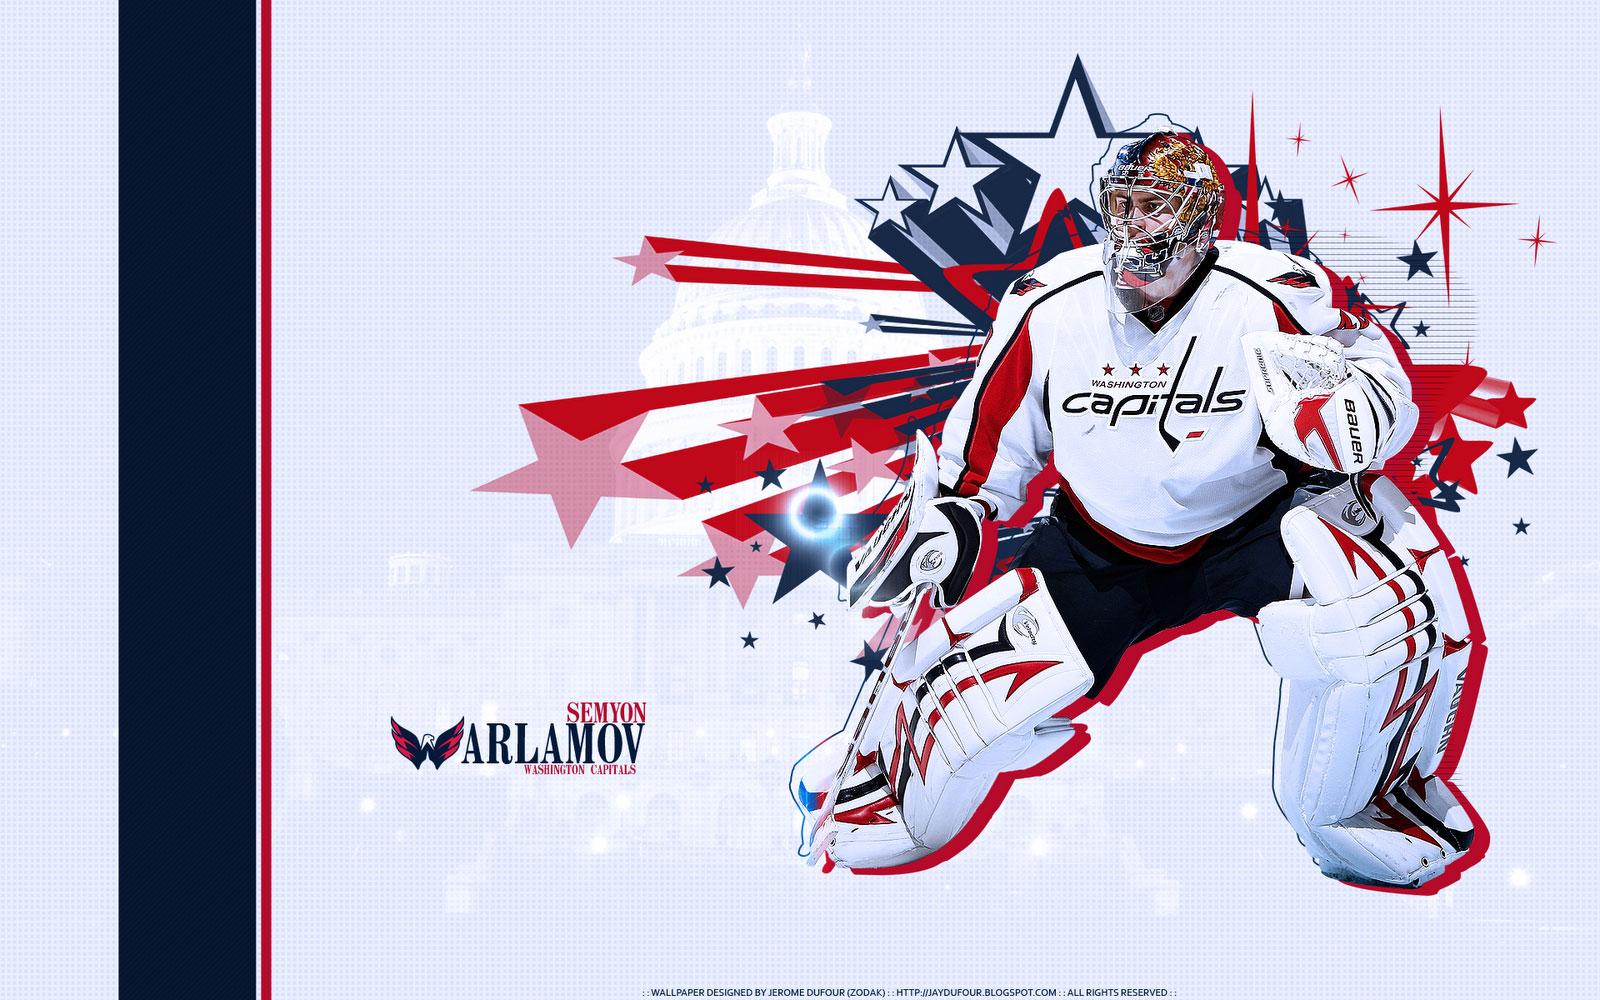 Wallpapers   Semyon Varlamov Washington Capitals Widescreen wallpaper 1600x1000